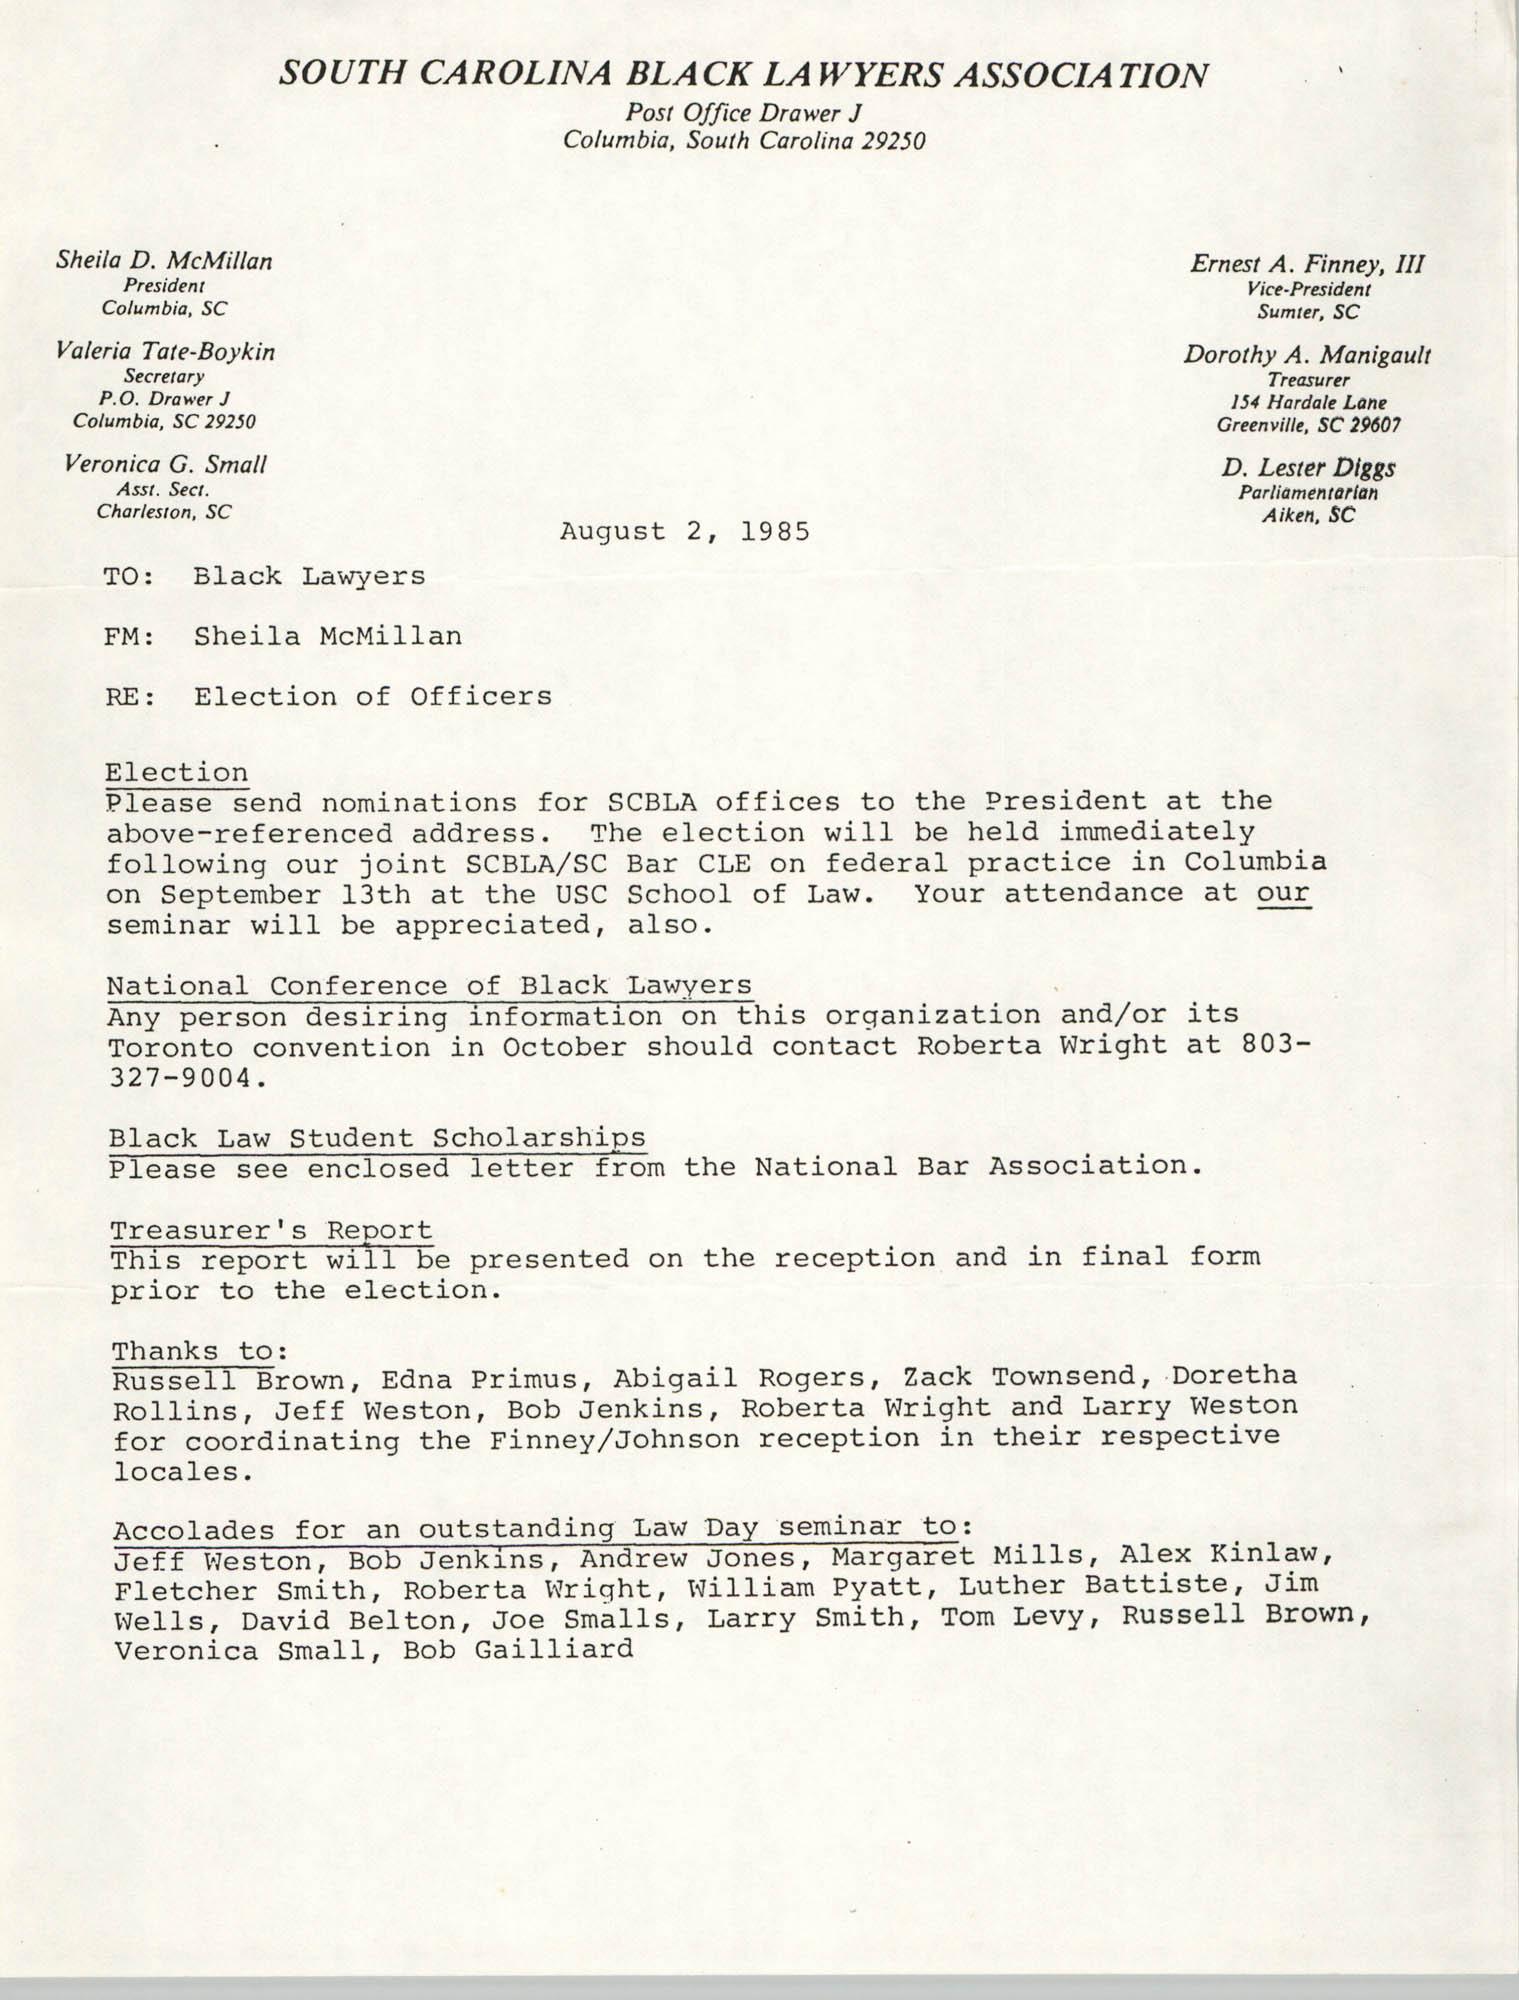 South Carolina Black Lawyers Association, Memorandum,  Sheila McMillan, August 2, 1985